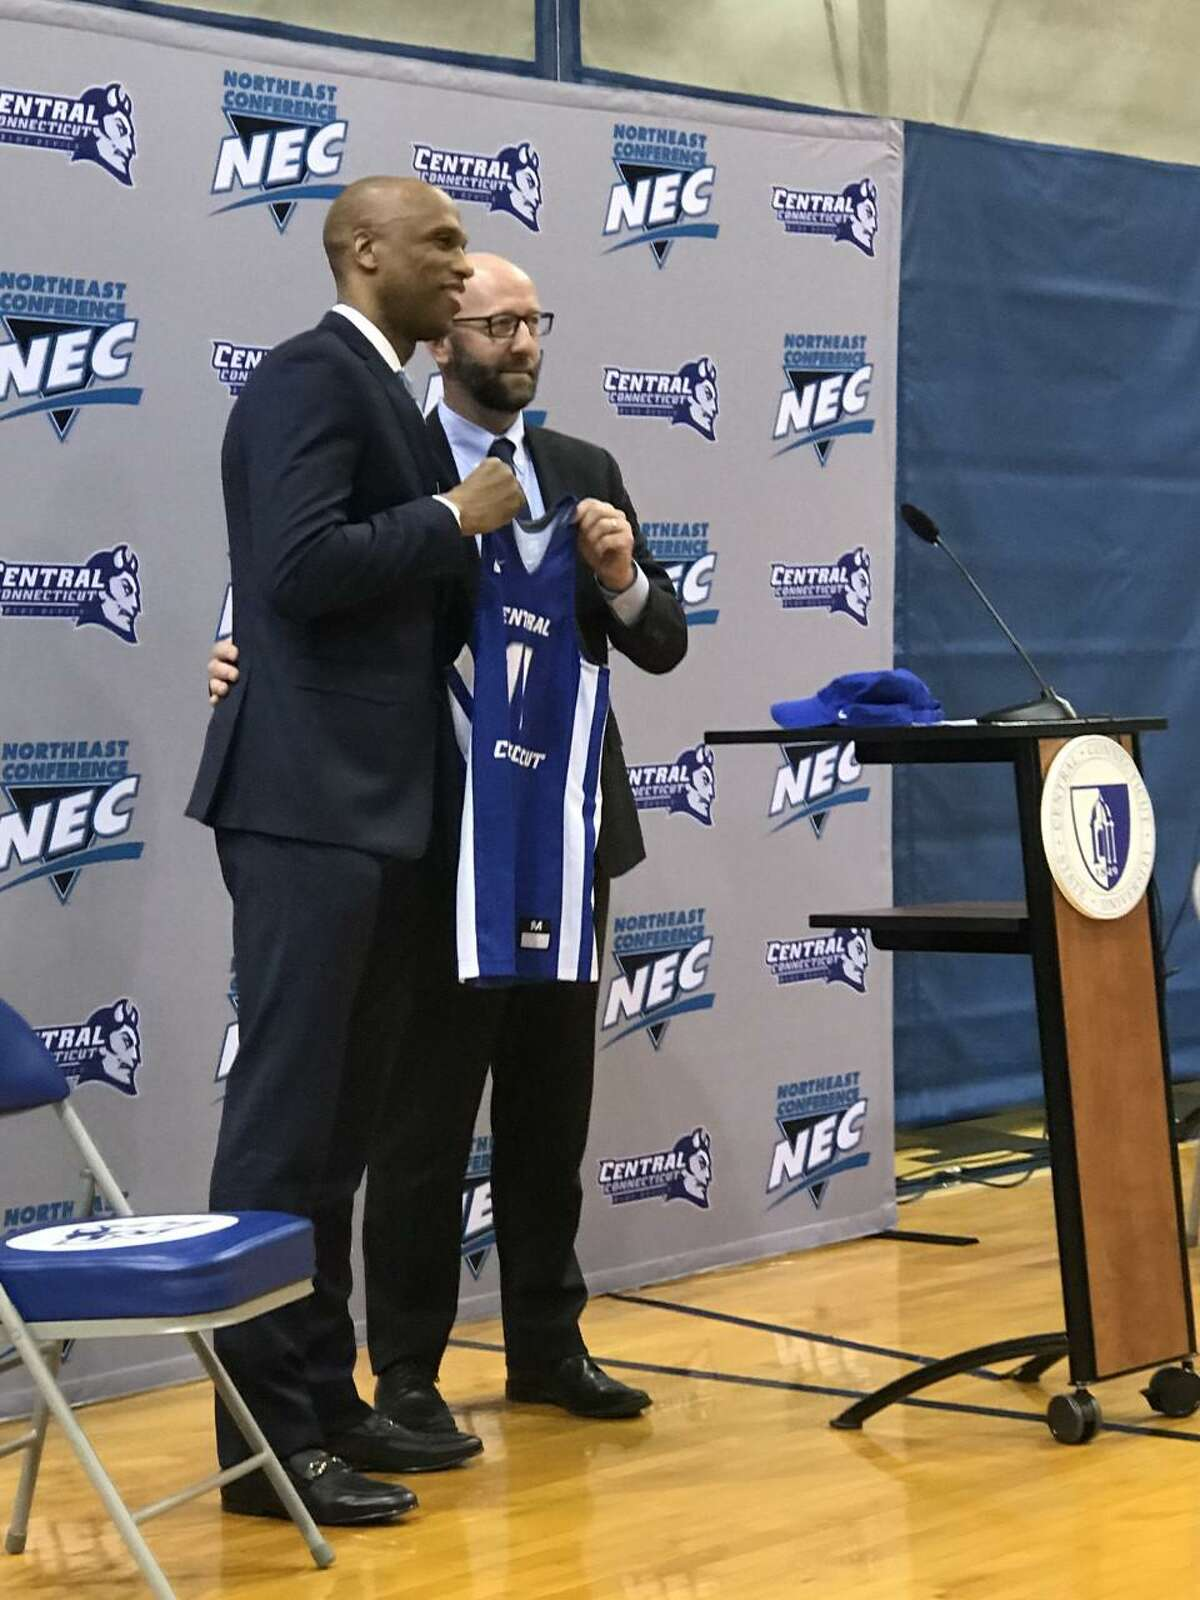 Patrick Sellers was introduced as the new Central Connecticut State men's basketball coach on Friday.